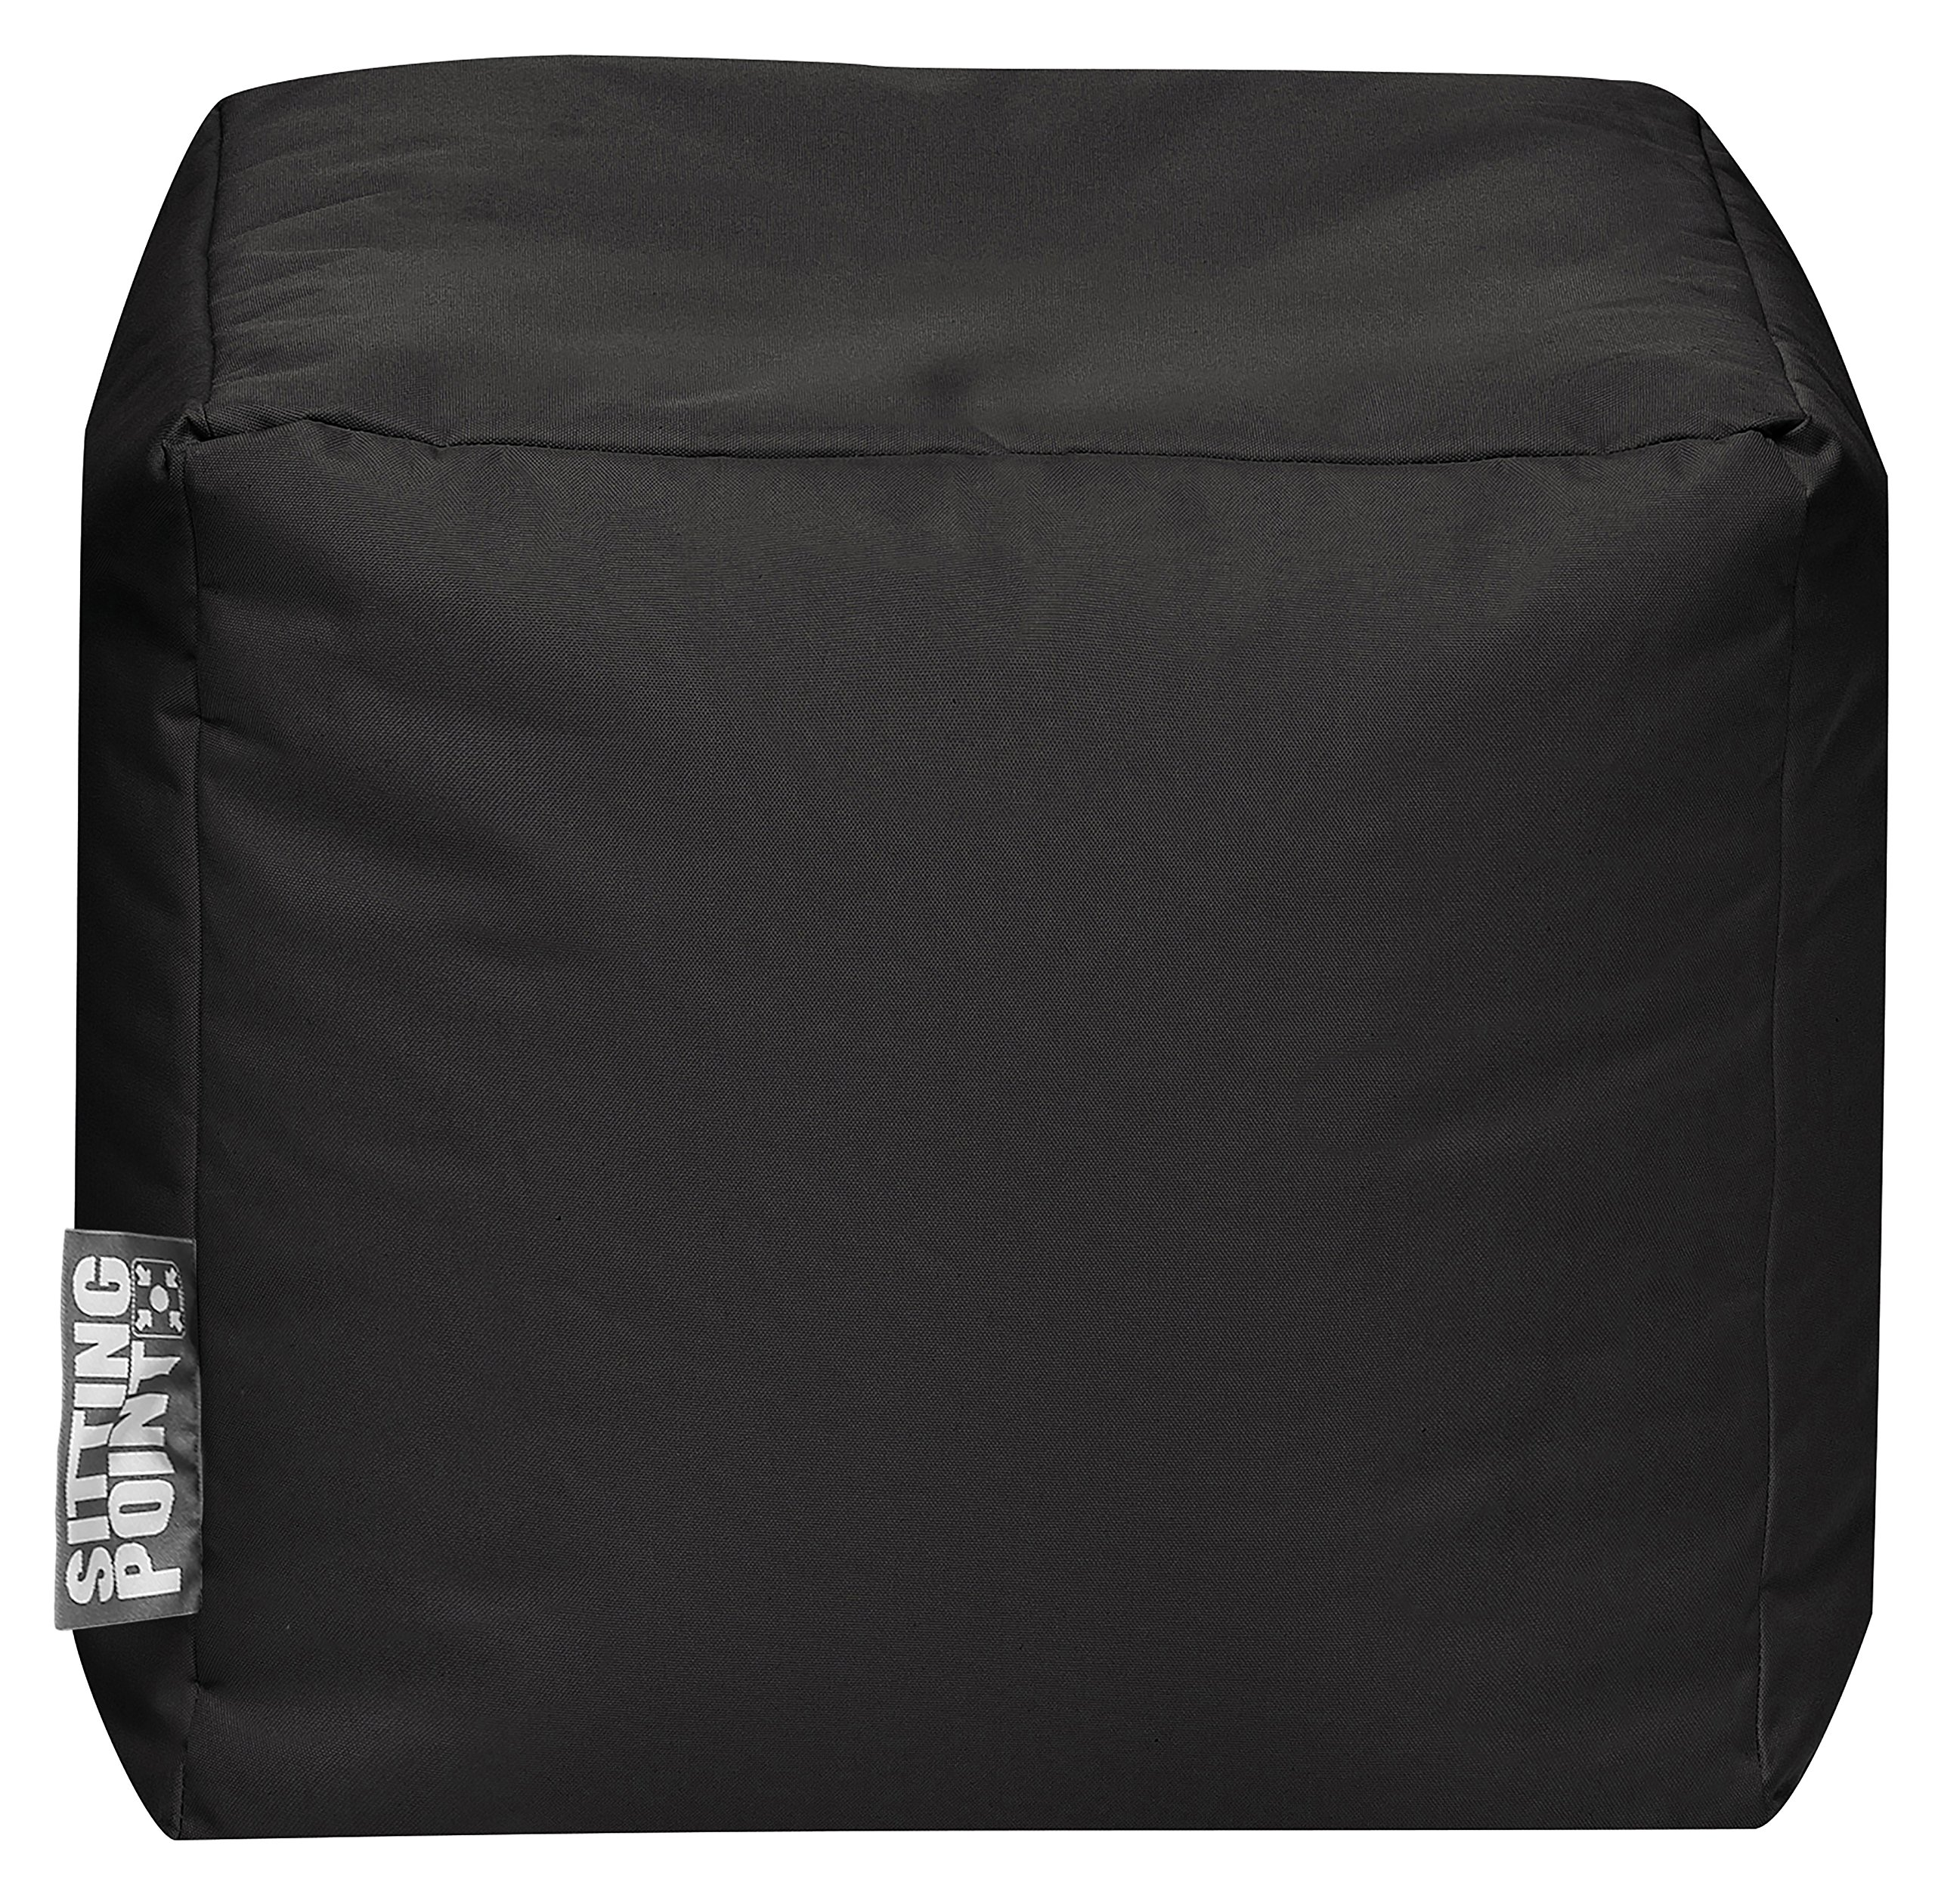 Gouchee Home Brava Cube Collection Contemporary Polyester Upholstered Pouf/Ottoman, Black